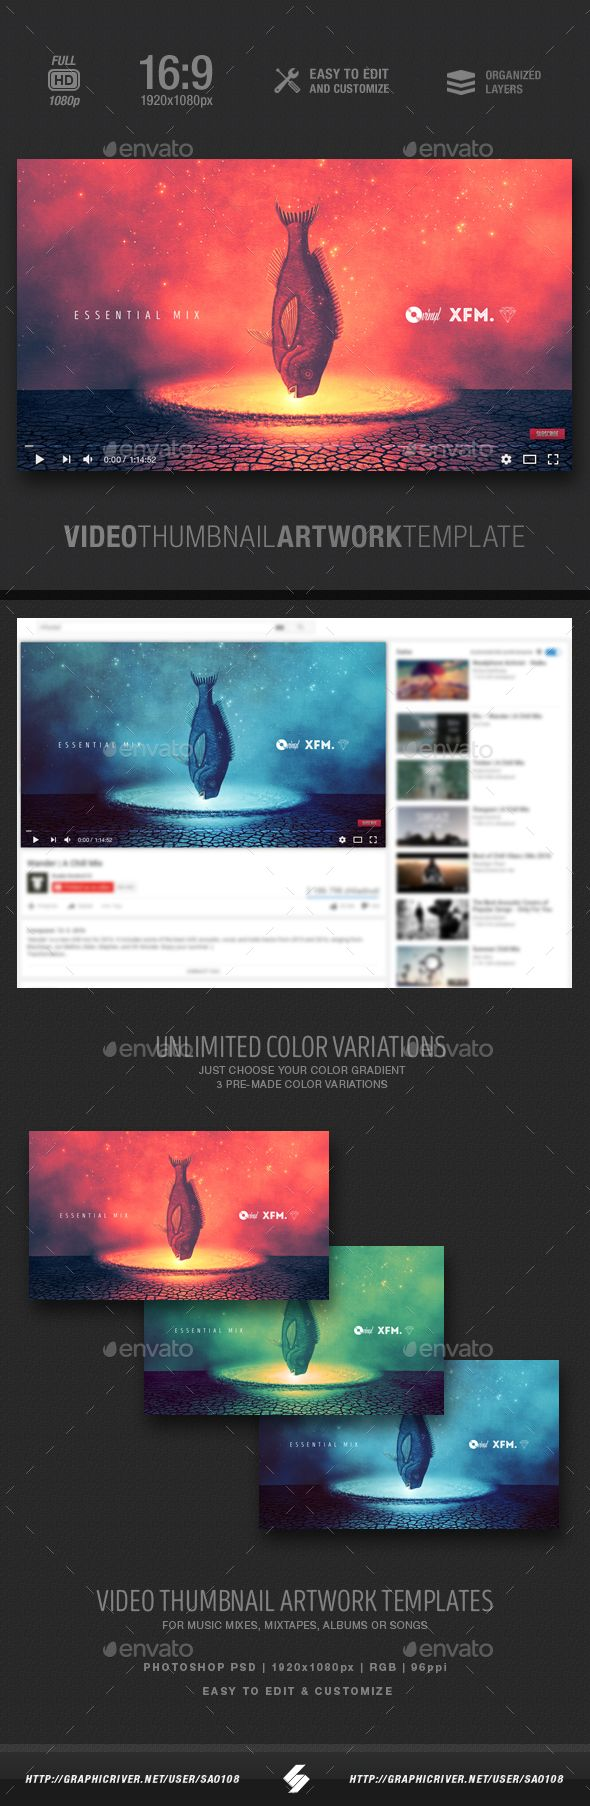 15 besten YouTube / video / Music Bilder auf Pinterest | Vorlagen ...